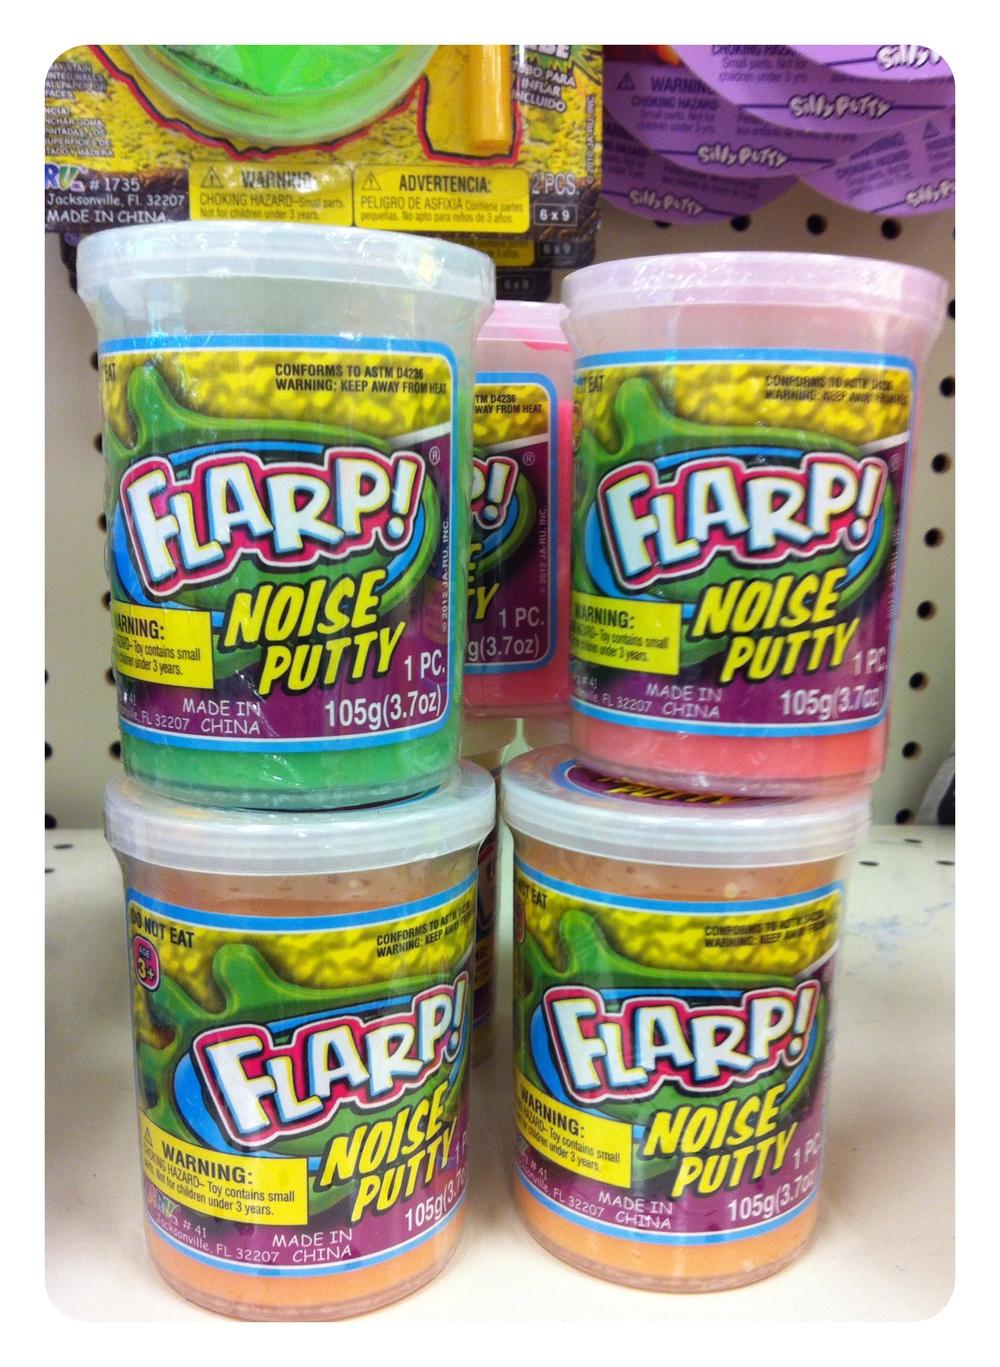 What kid (or adult male) wouldn't love a can of Flarp?